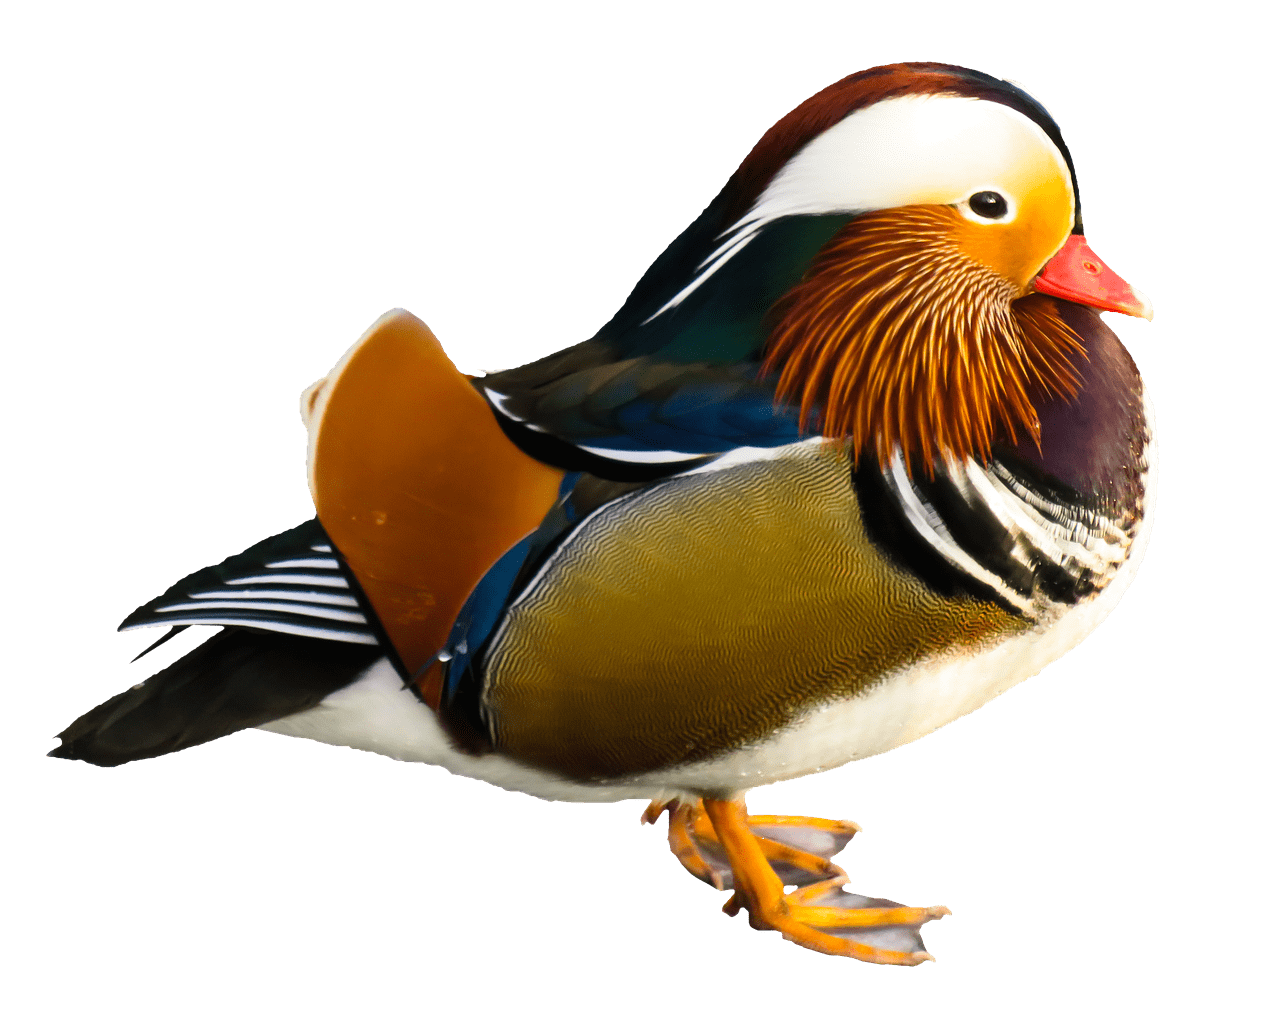 Bird transparent png stickpng. Ducks clipart mandarin duck